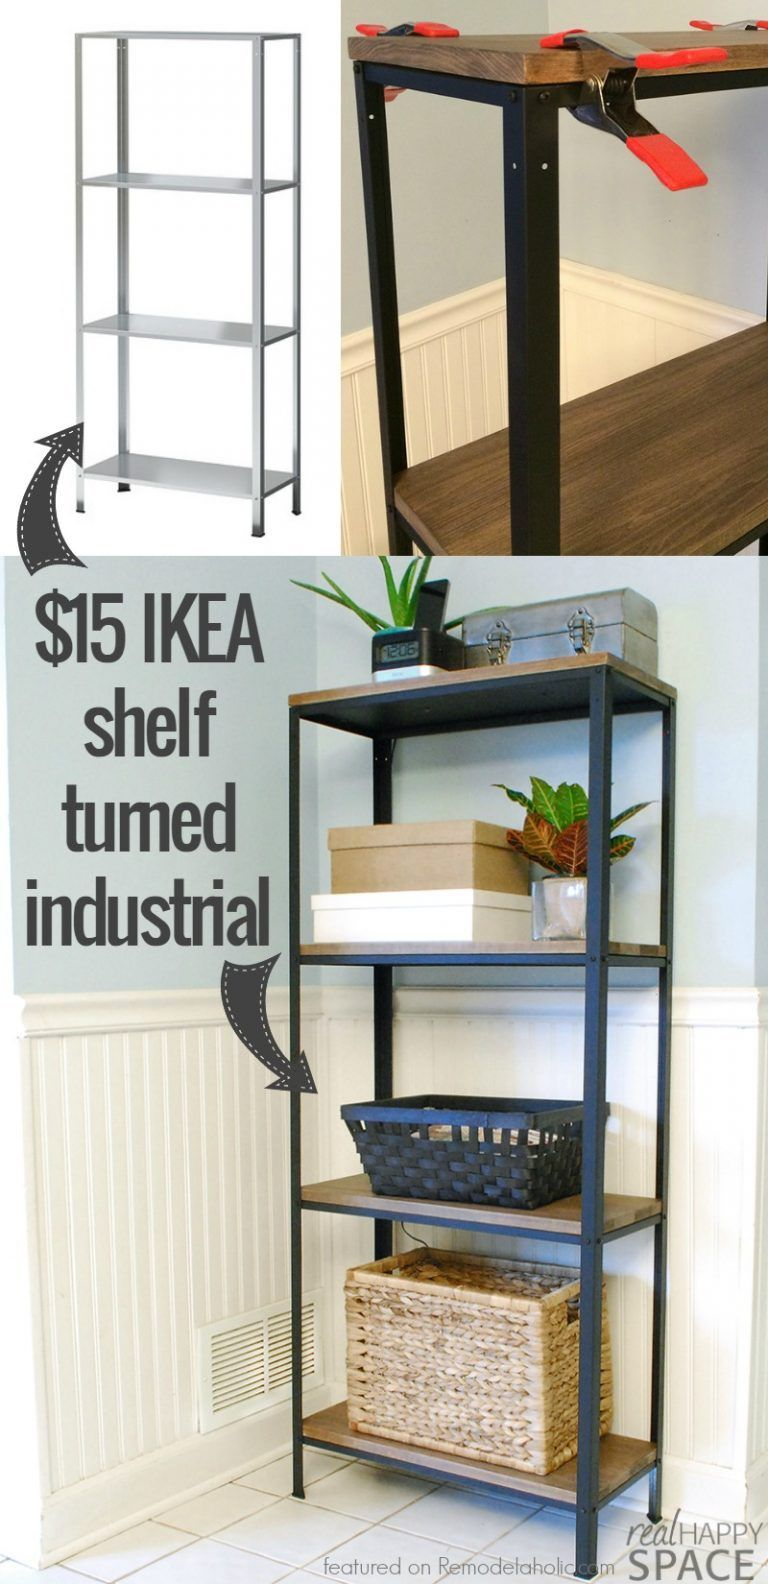 ikea industrial furniture. wood and metal ikea hack industrial shelf how to turn -- from a cheap beautiful style real happy ikea furniture